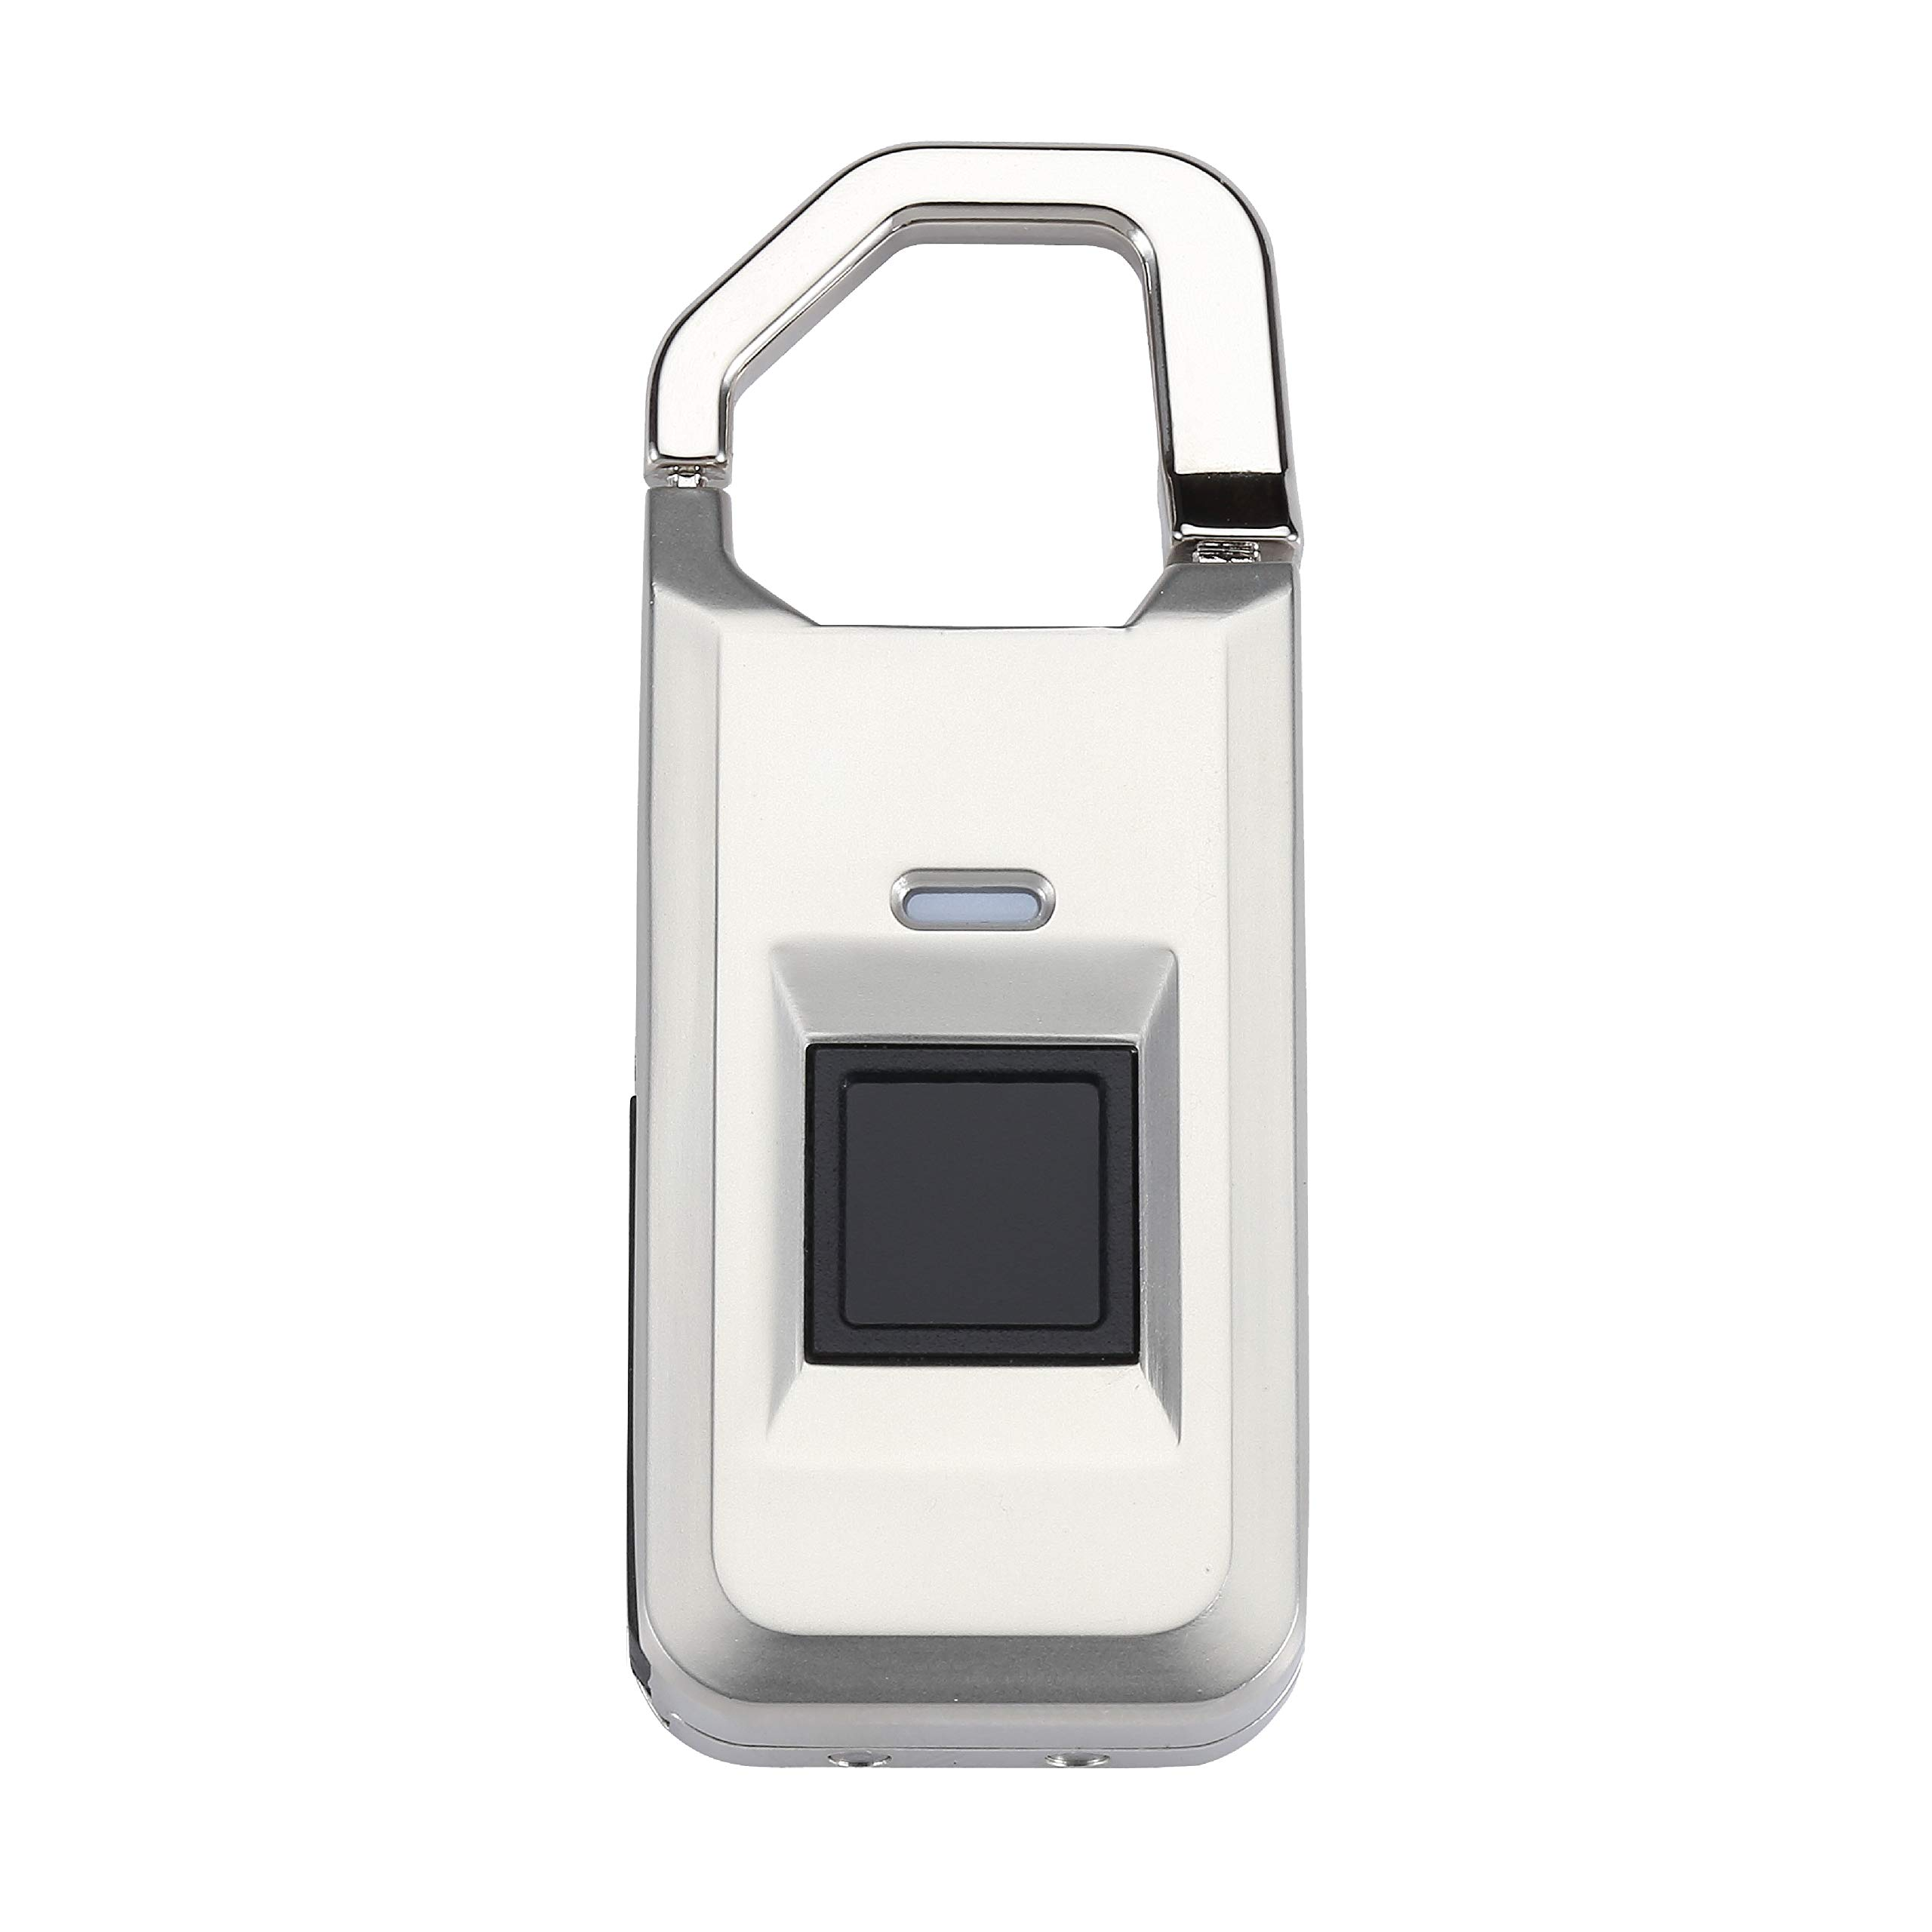 Midas Touch Fingerprint Mini Padlock with iKey - Standalone One-Touch Security for Suitcases, Mailboxes, etc, Unlocks in Under 1 Second (Silver)